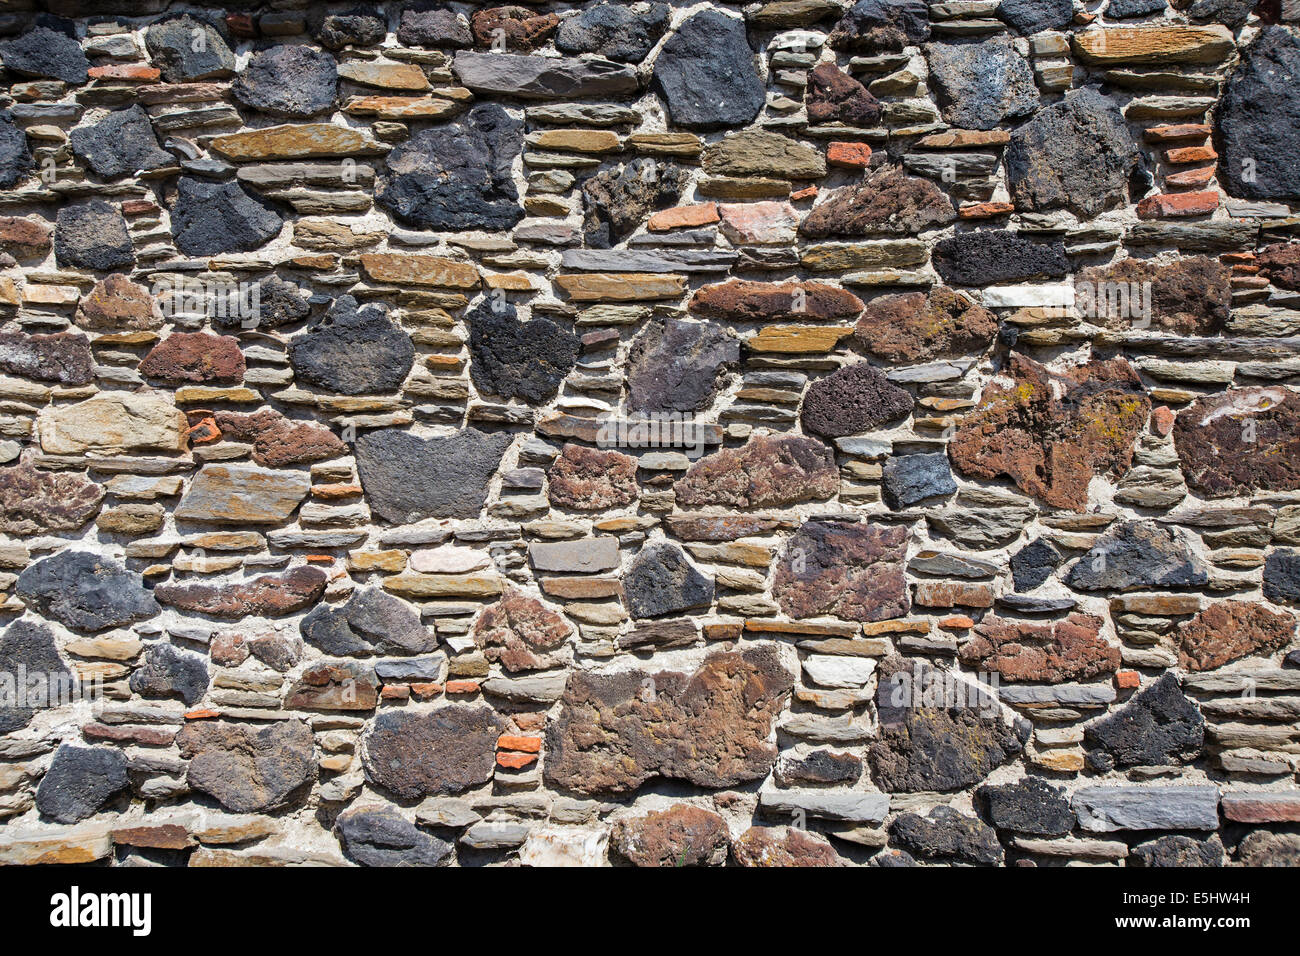 Volcanic stones used on a wall Kula Manisa Turkey - Stock Image